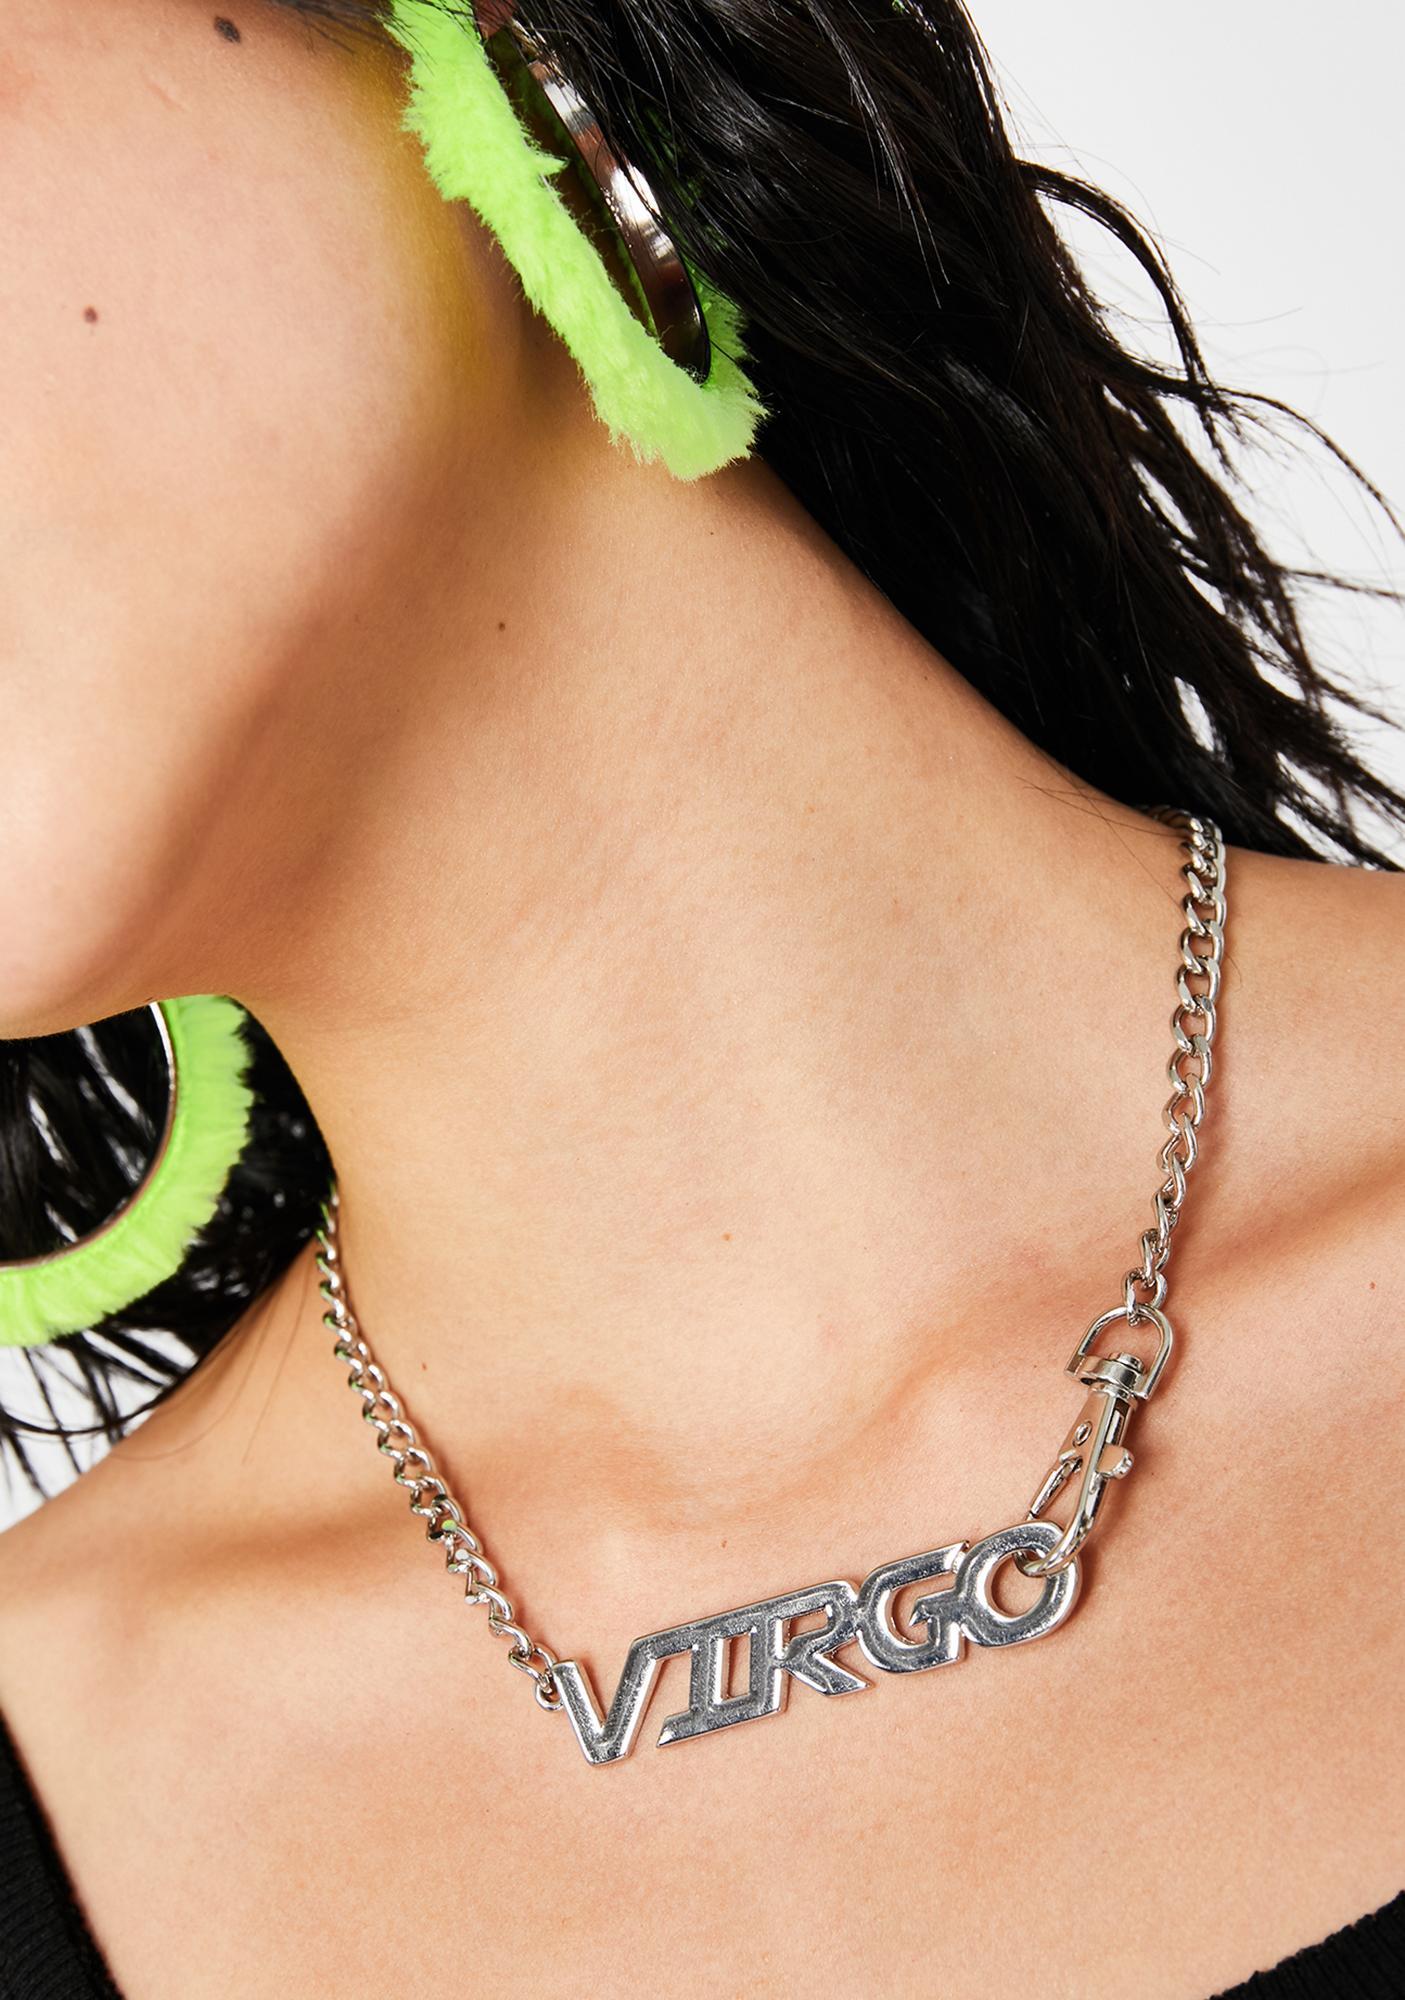 Virgo Gang Chain Necklace